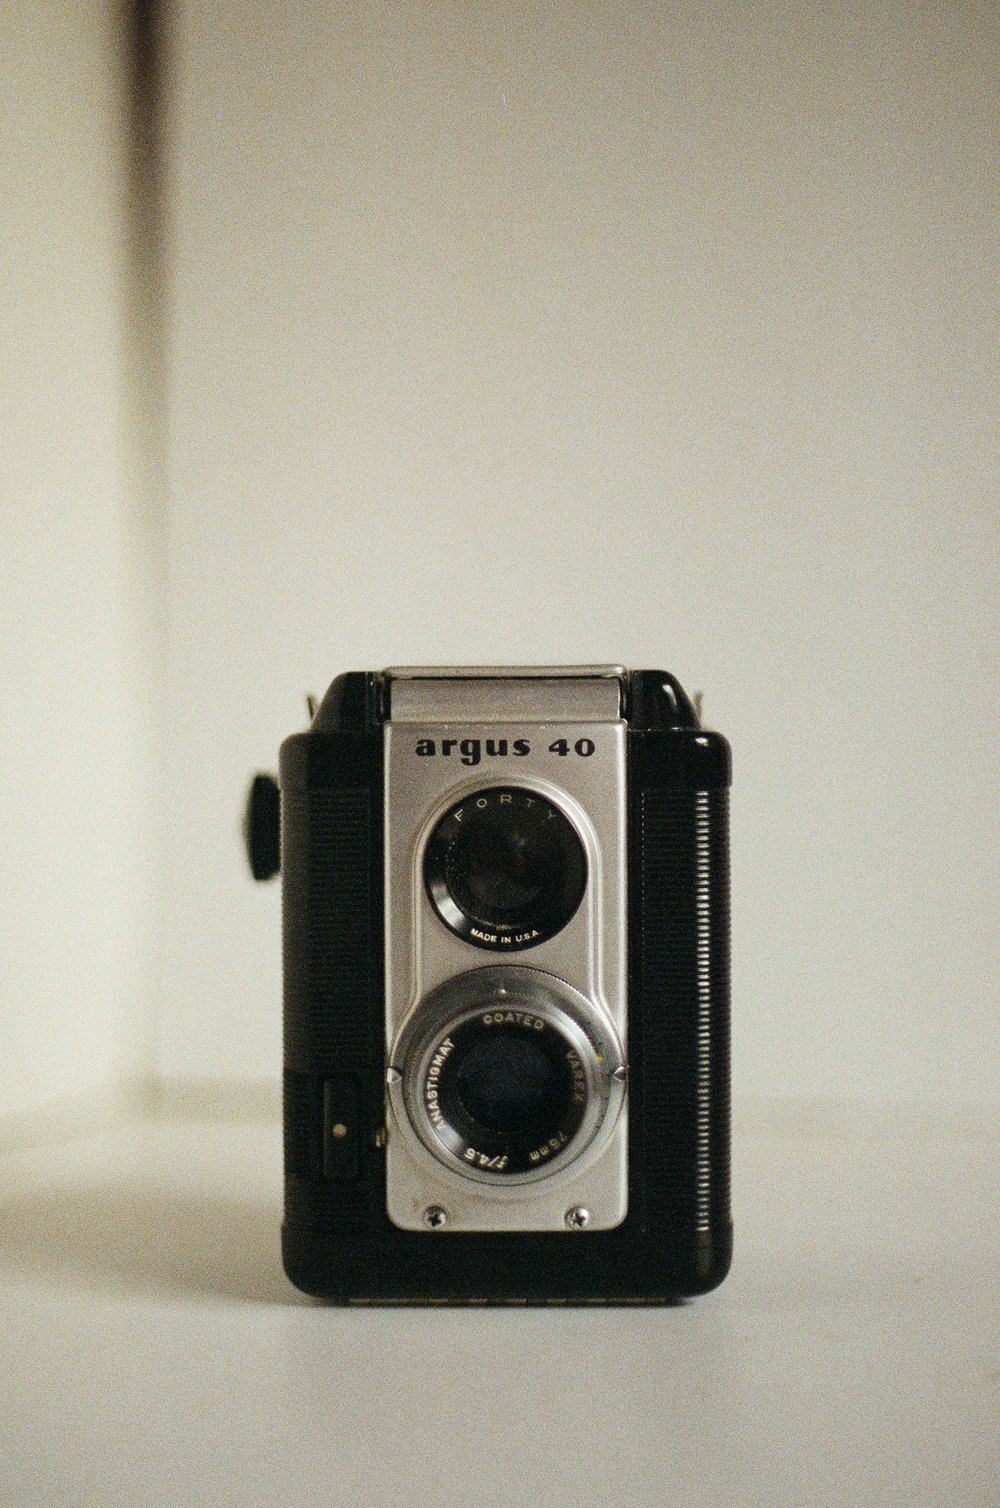 Argus 40 - 1950's Medium Format Psydo Twin Lens Reflex Camera